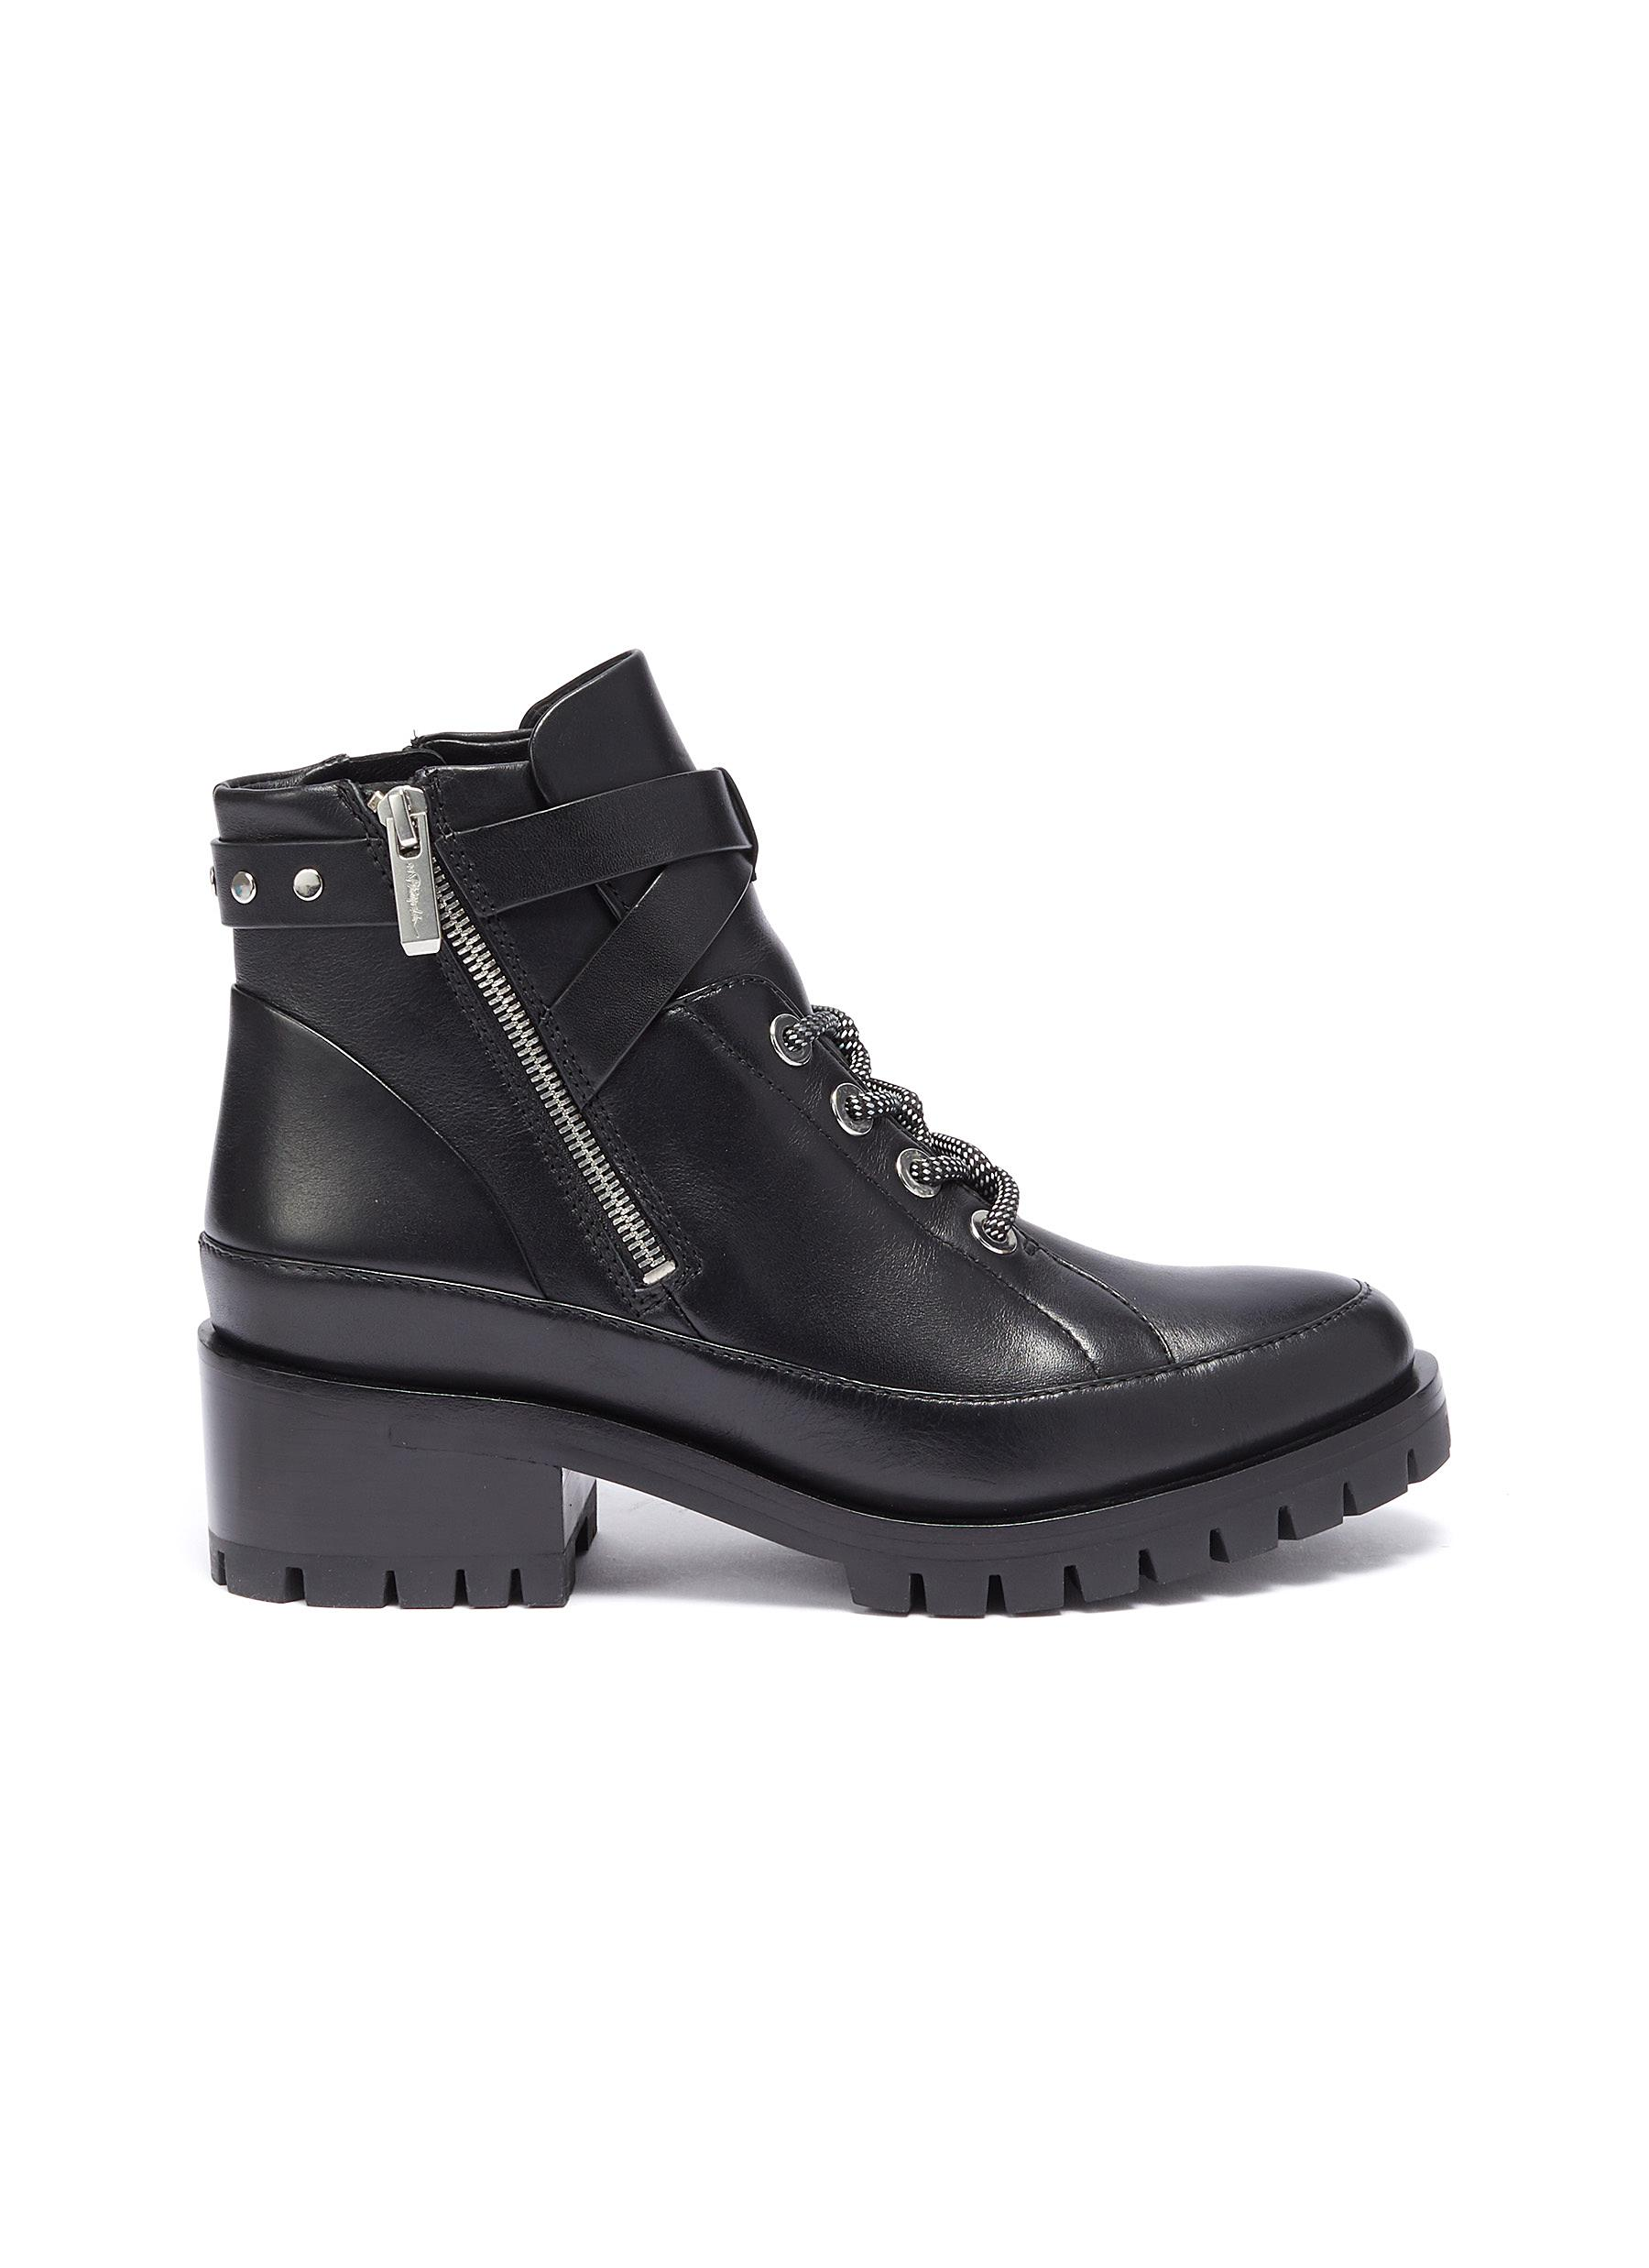 Hayett leather ankle boots by 3.1 Phillip Lim